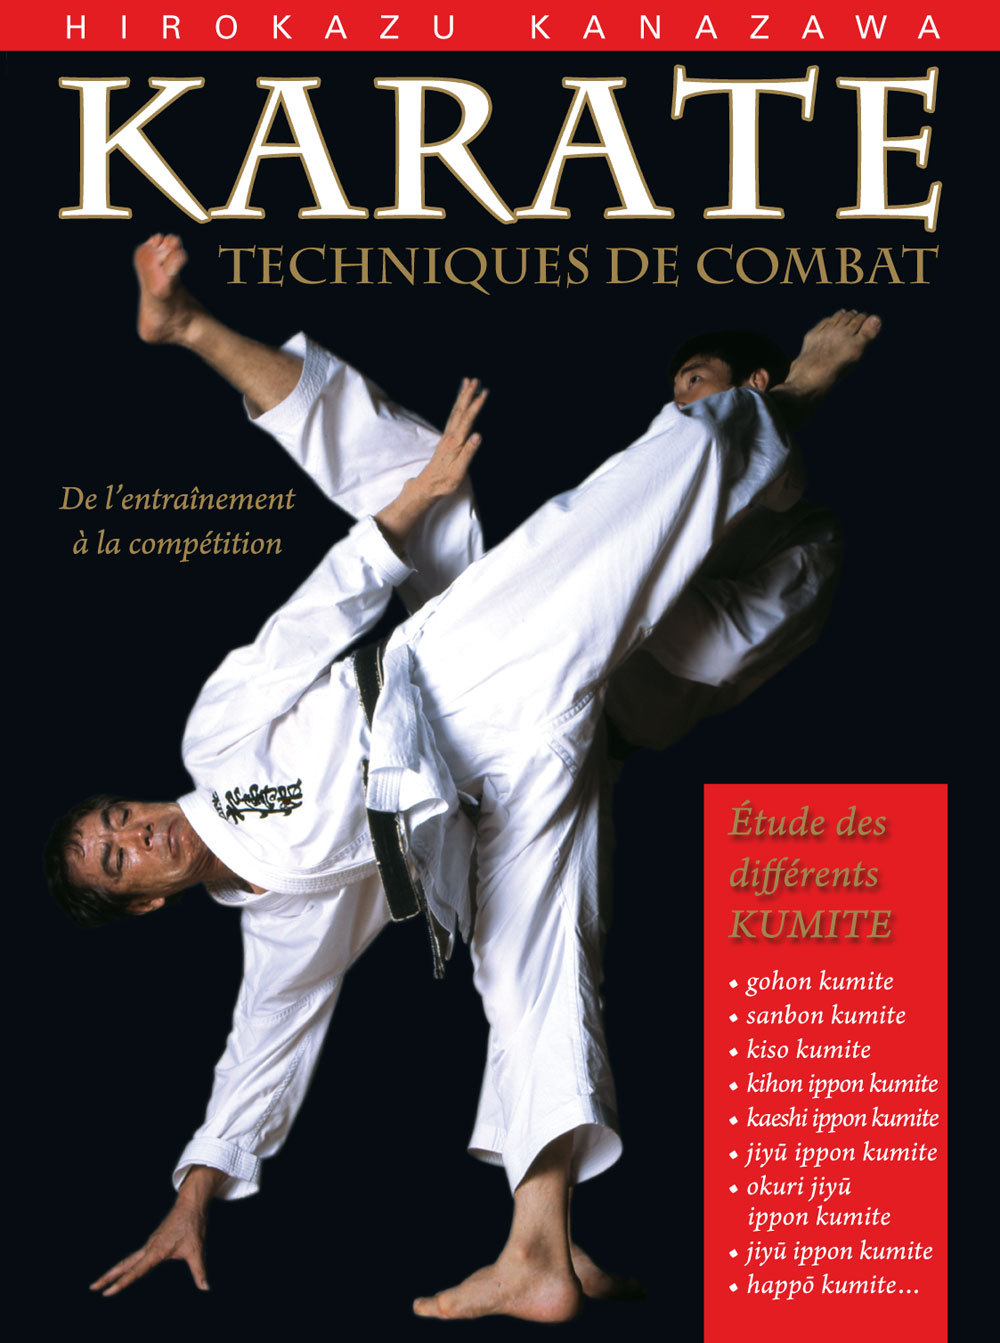 KARATE : TECHNIQUES DE COMBAT ETUDES DES DIFFERENTS KUMITE